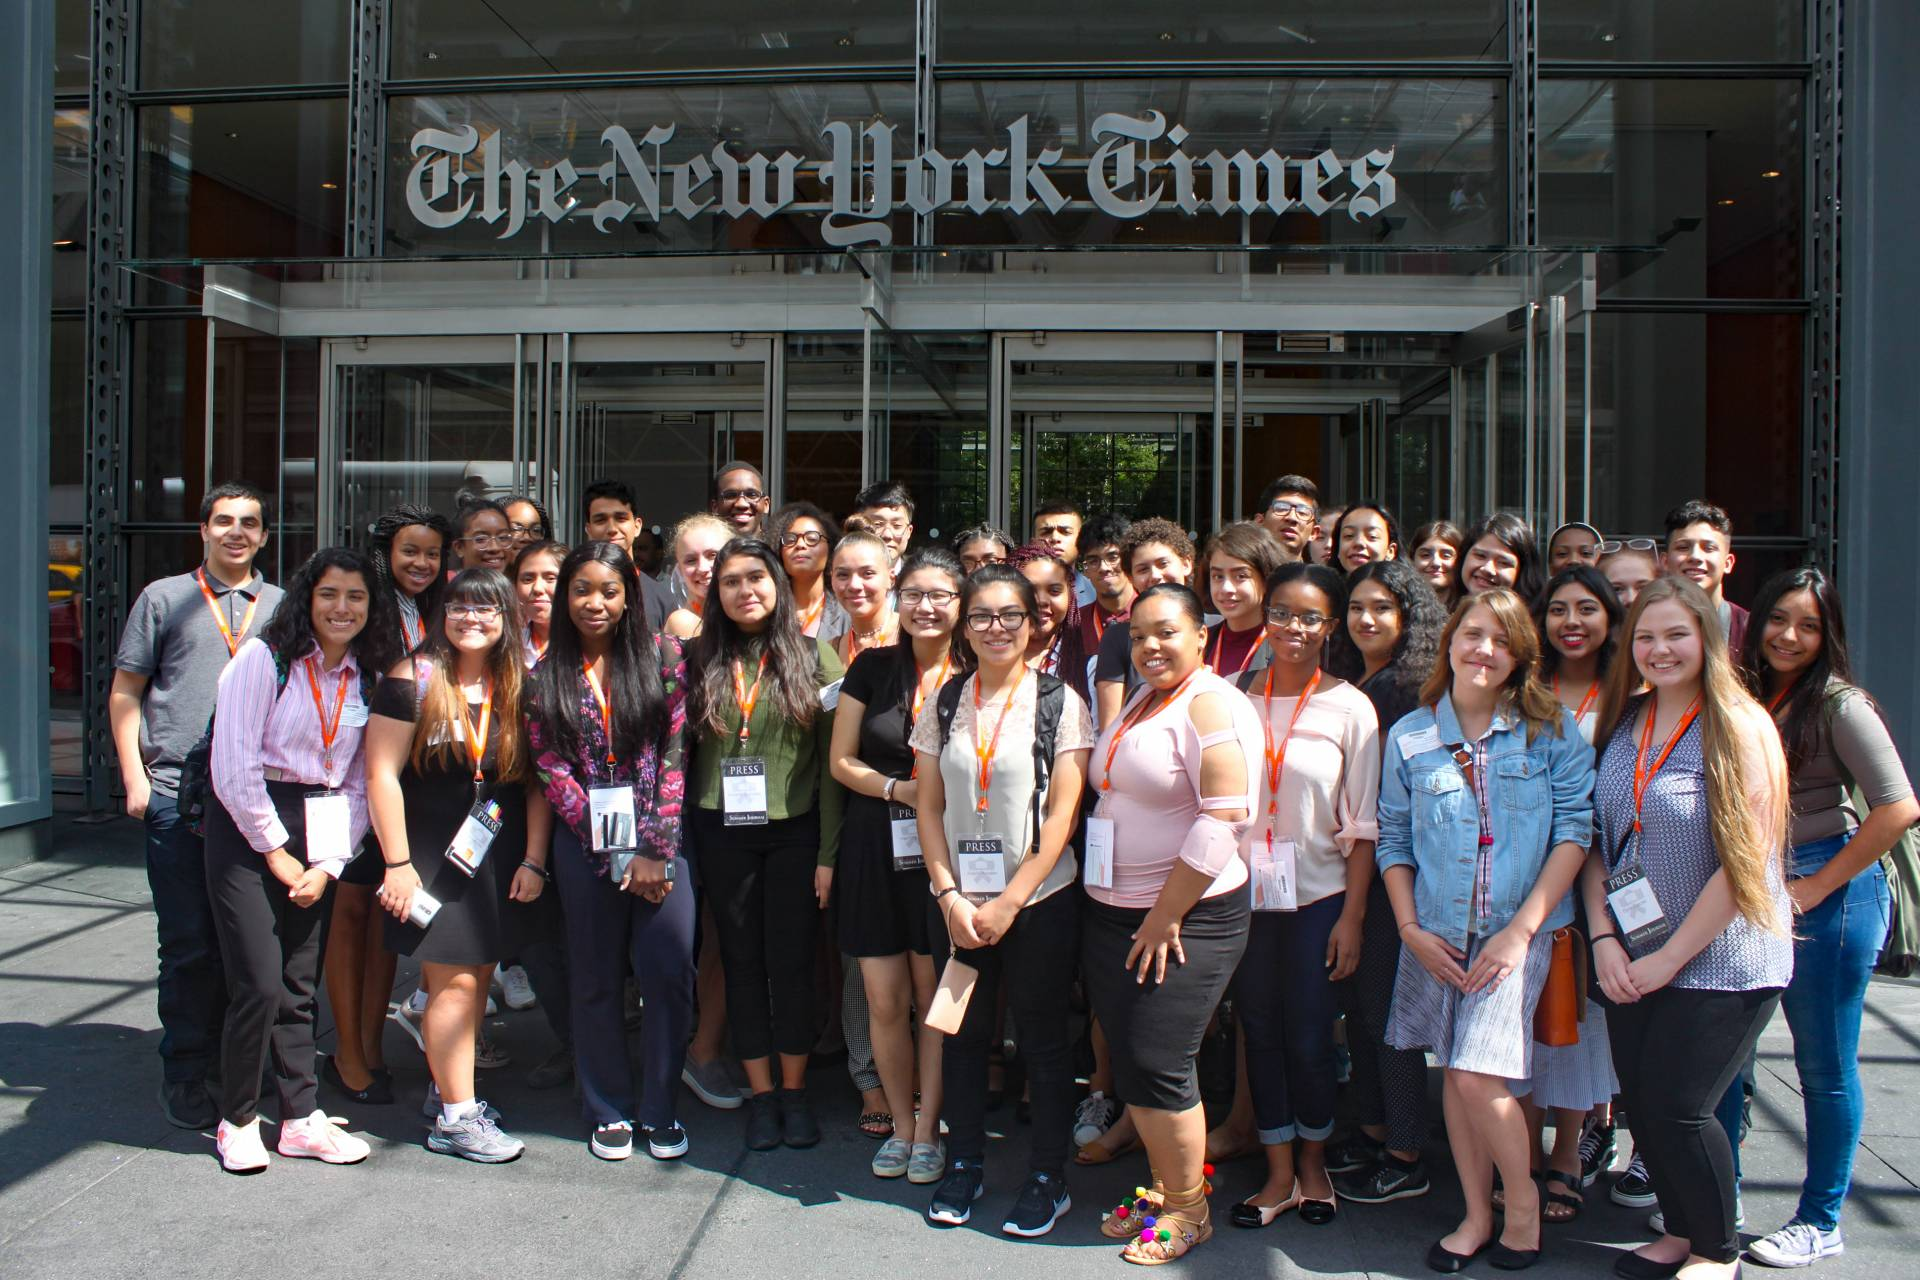 Students posing in front of New York Times building